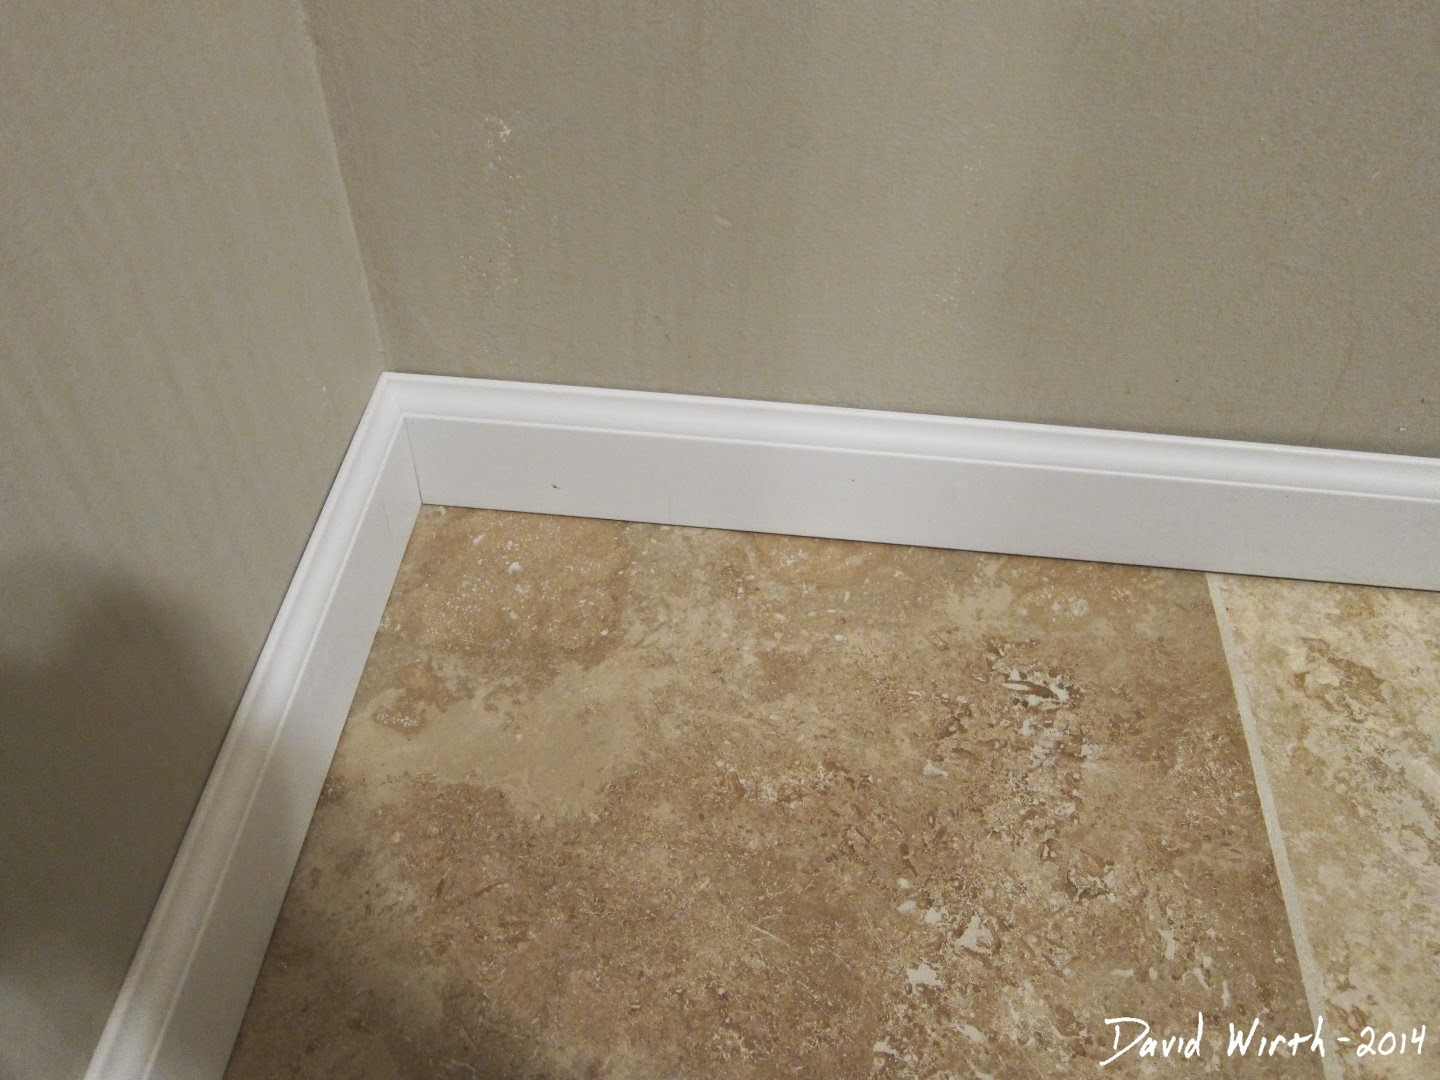 install wood baseboard, caulk